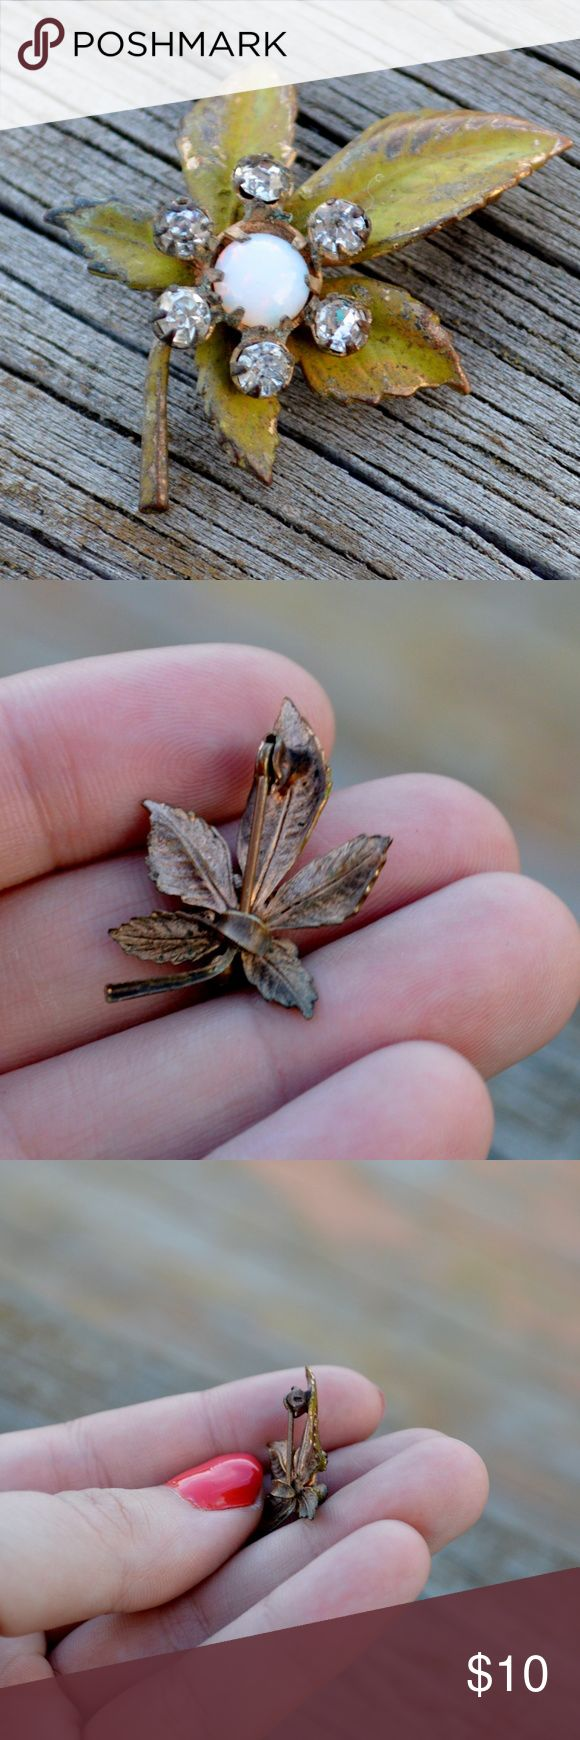 Antique CZ Rhinestone Leaf Faux Fire Opal Pin Up for sale is one pin, as pictured. It is a very old (maybe 1920s) leaf pin. It features a coppery/goldish toned metal with green enamel paint, rhinestones and what I believe is a faux opal (a bit of fire at the right angles). It measures about 1.15  inches tall by about .8 inches wide. It has age wear (should be noticeable via pictures, pretty heavy from age, but the pin is still totally wearable). It features a non-locking c-clasp that is not…